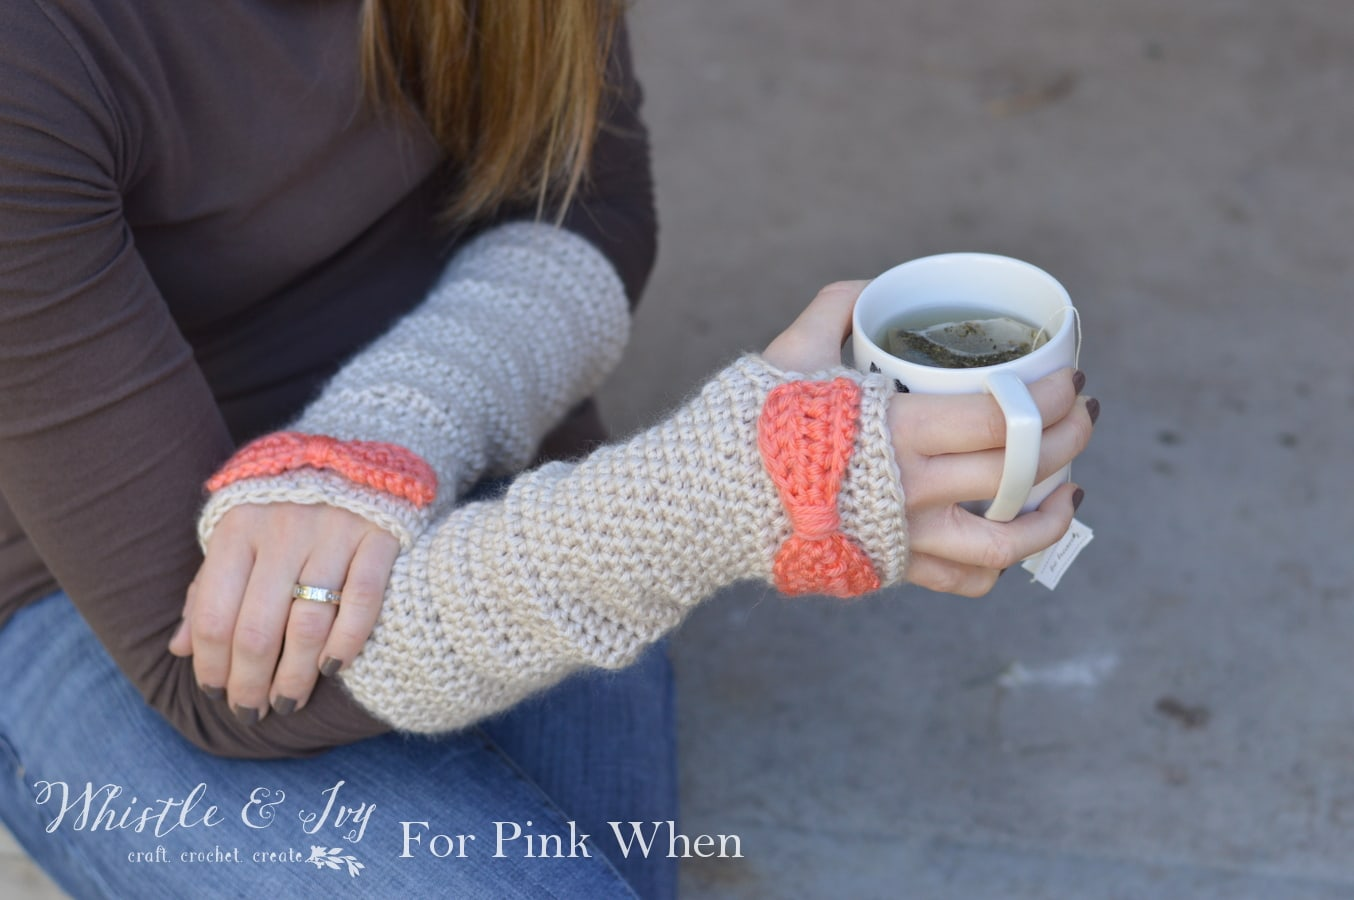 Crocheting Using Your Arms : Dainty Bow Crochet Arm Warmers - Crochet these pretty and cozy arm ...